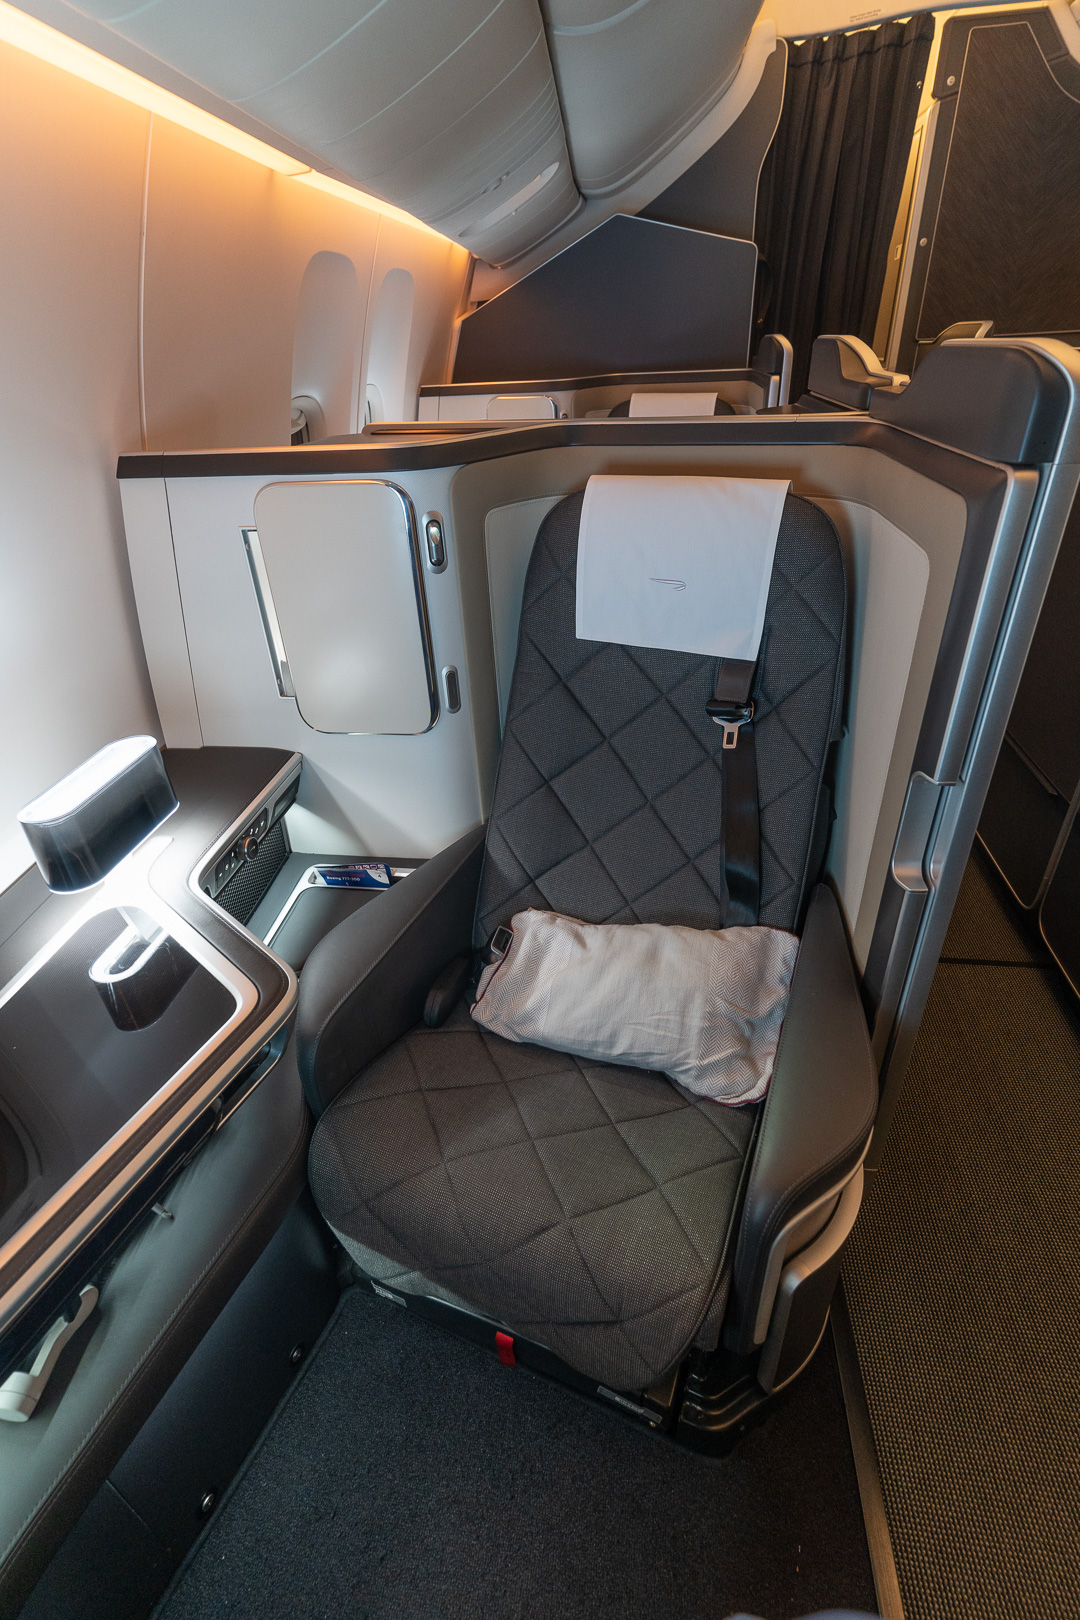 BA 77WN F 9 - REVIEW - British Airways : First Class Suites - B777 - London (LHR) to Malé (MLE) - [COVID-era]